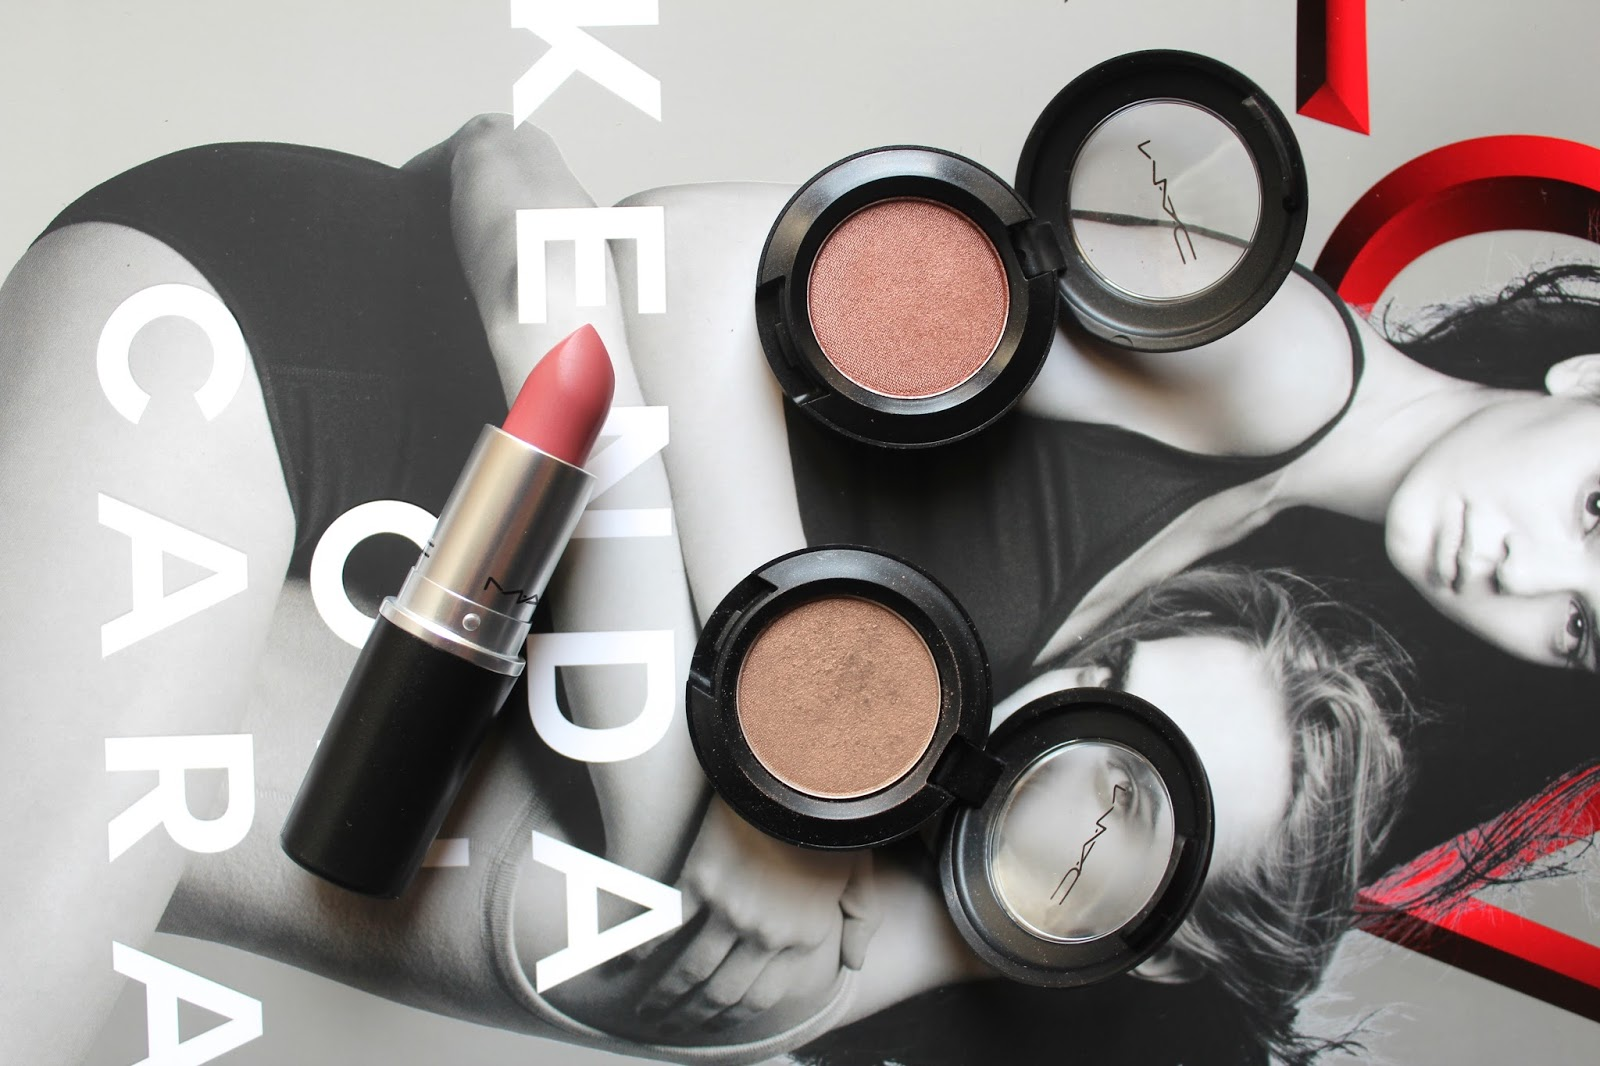 mac cosmetics haul bblogger bblogger beauty make up lipstick swatch eyeshadow instagram blog blogger patina frost sable brave satin finish